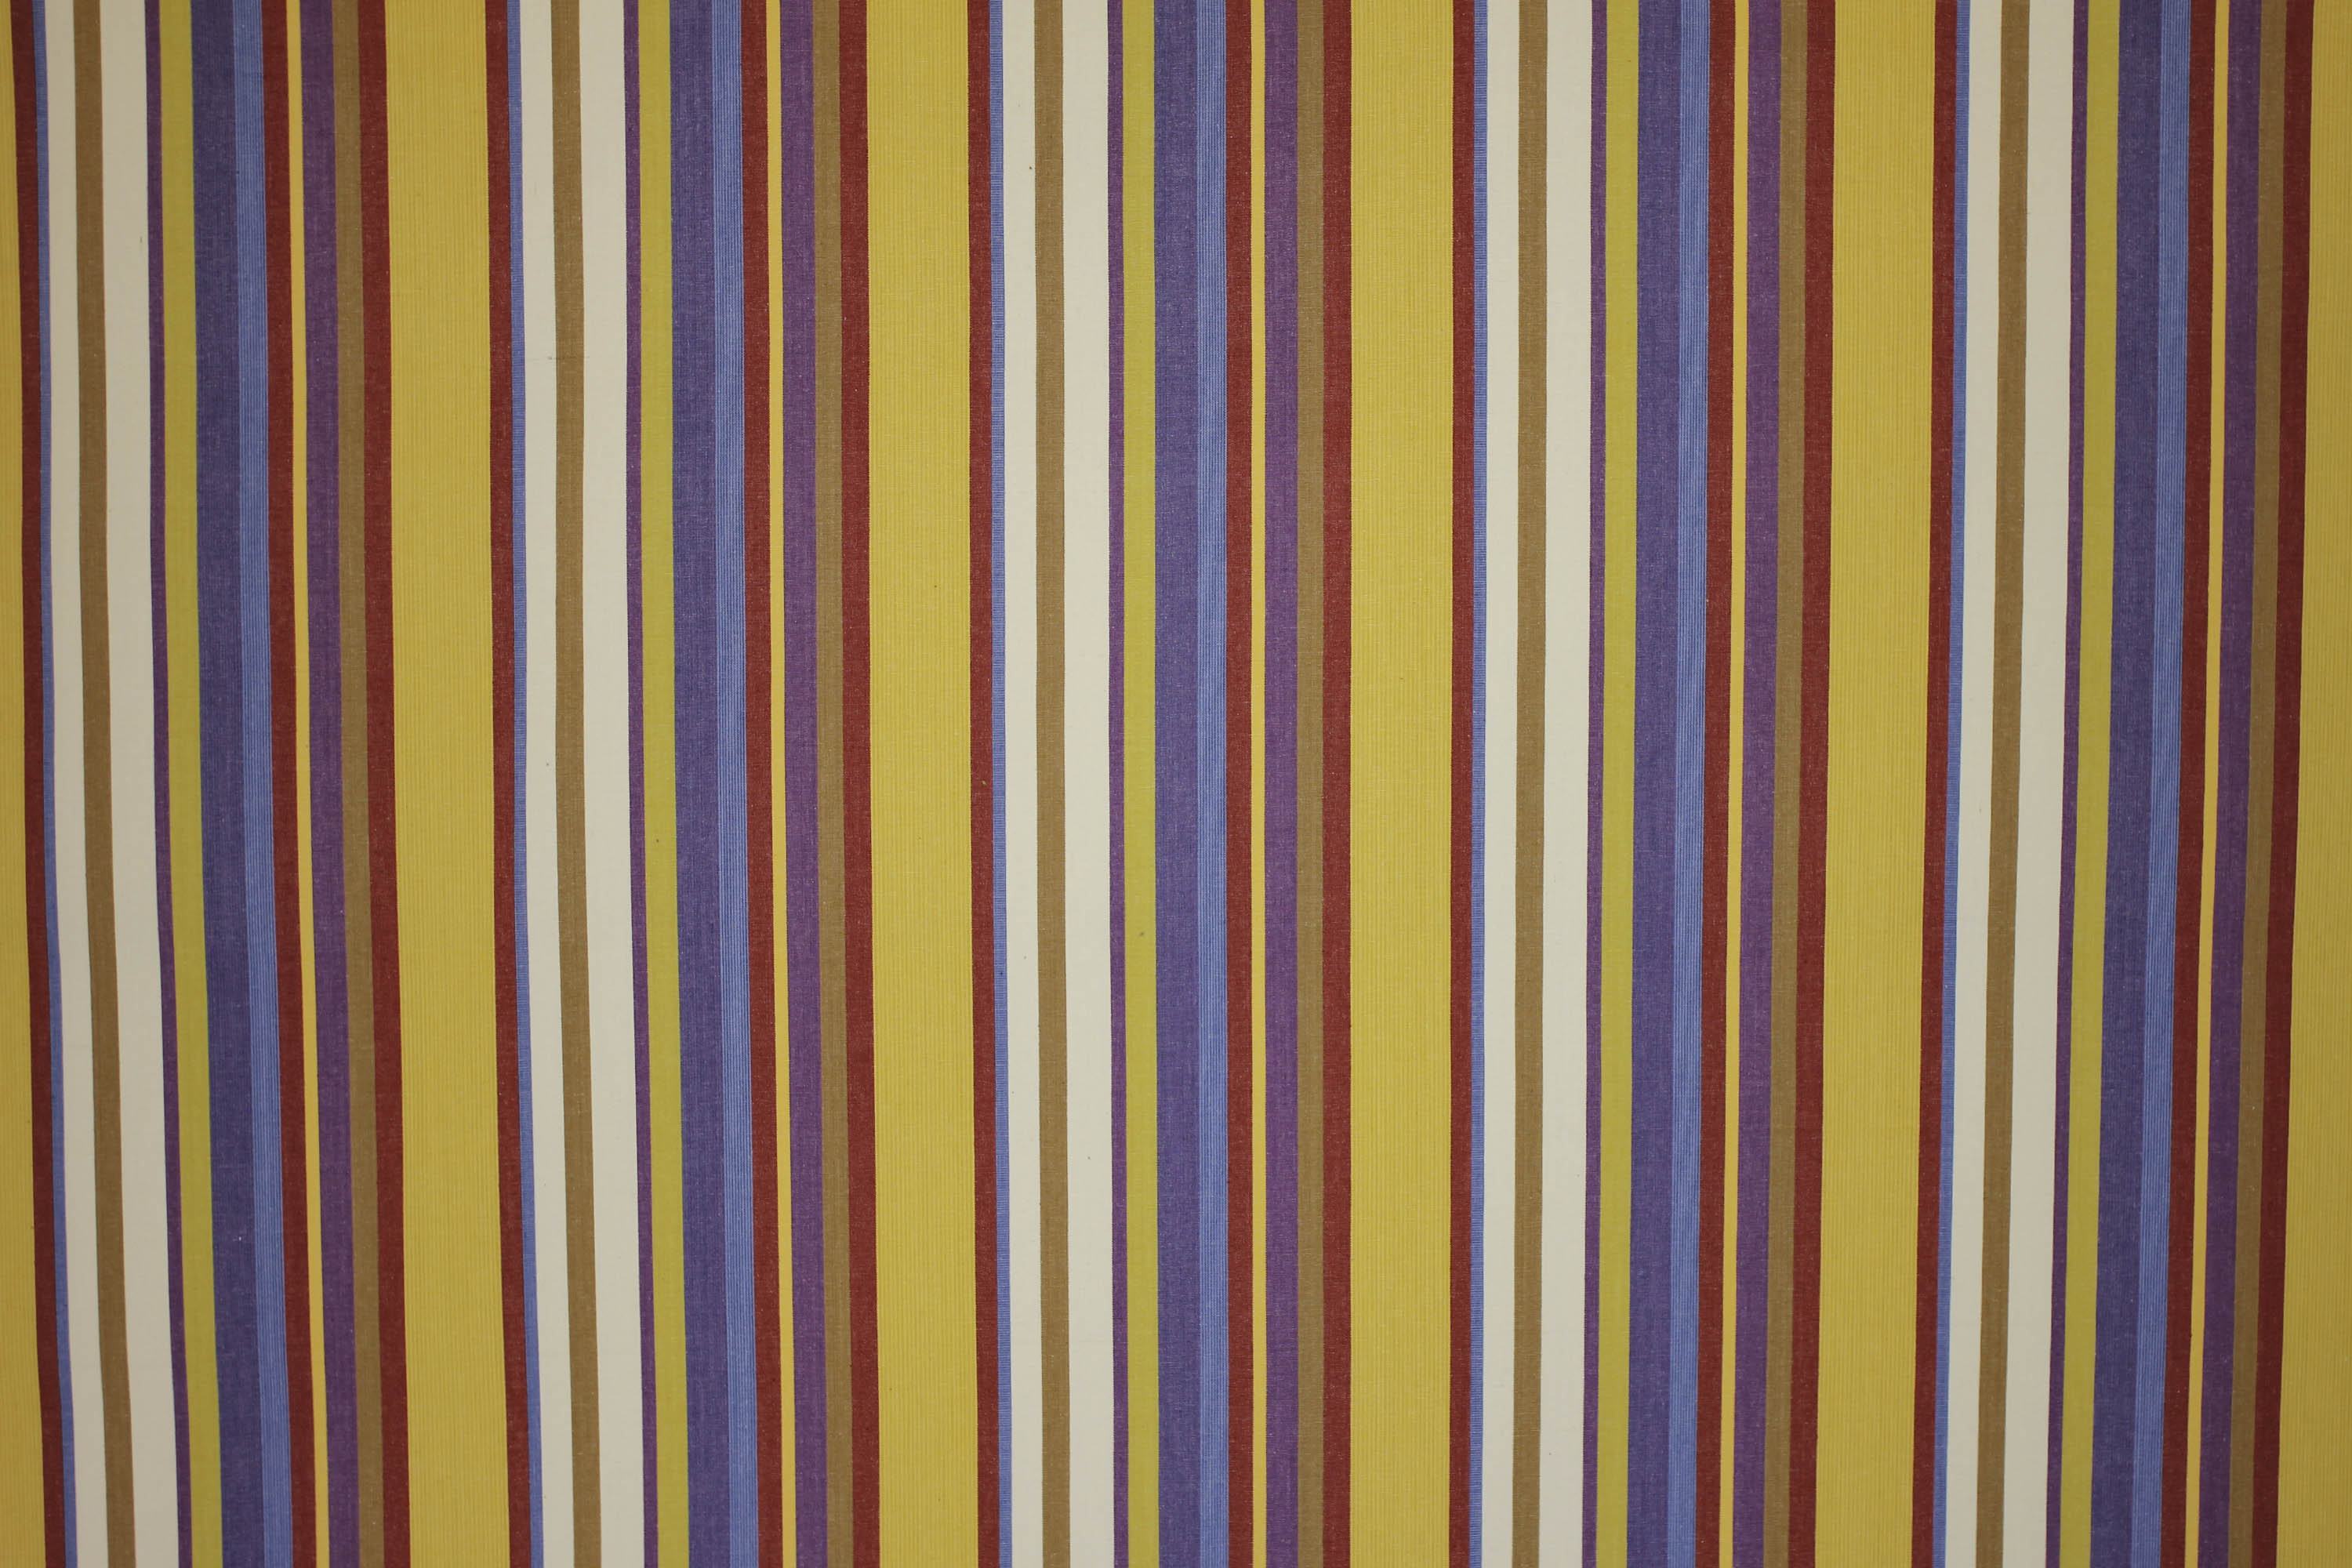 Apricot Striped Fabrics | Stripe Cotton Fabrics | Striped Curtain Fabrics | Upholstery Fabrics  Horseshoe Stripes